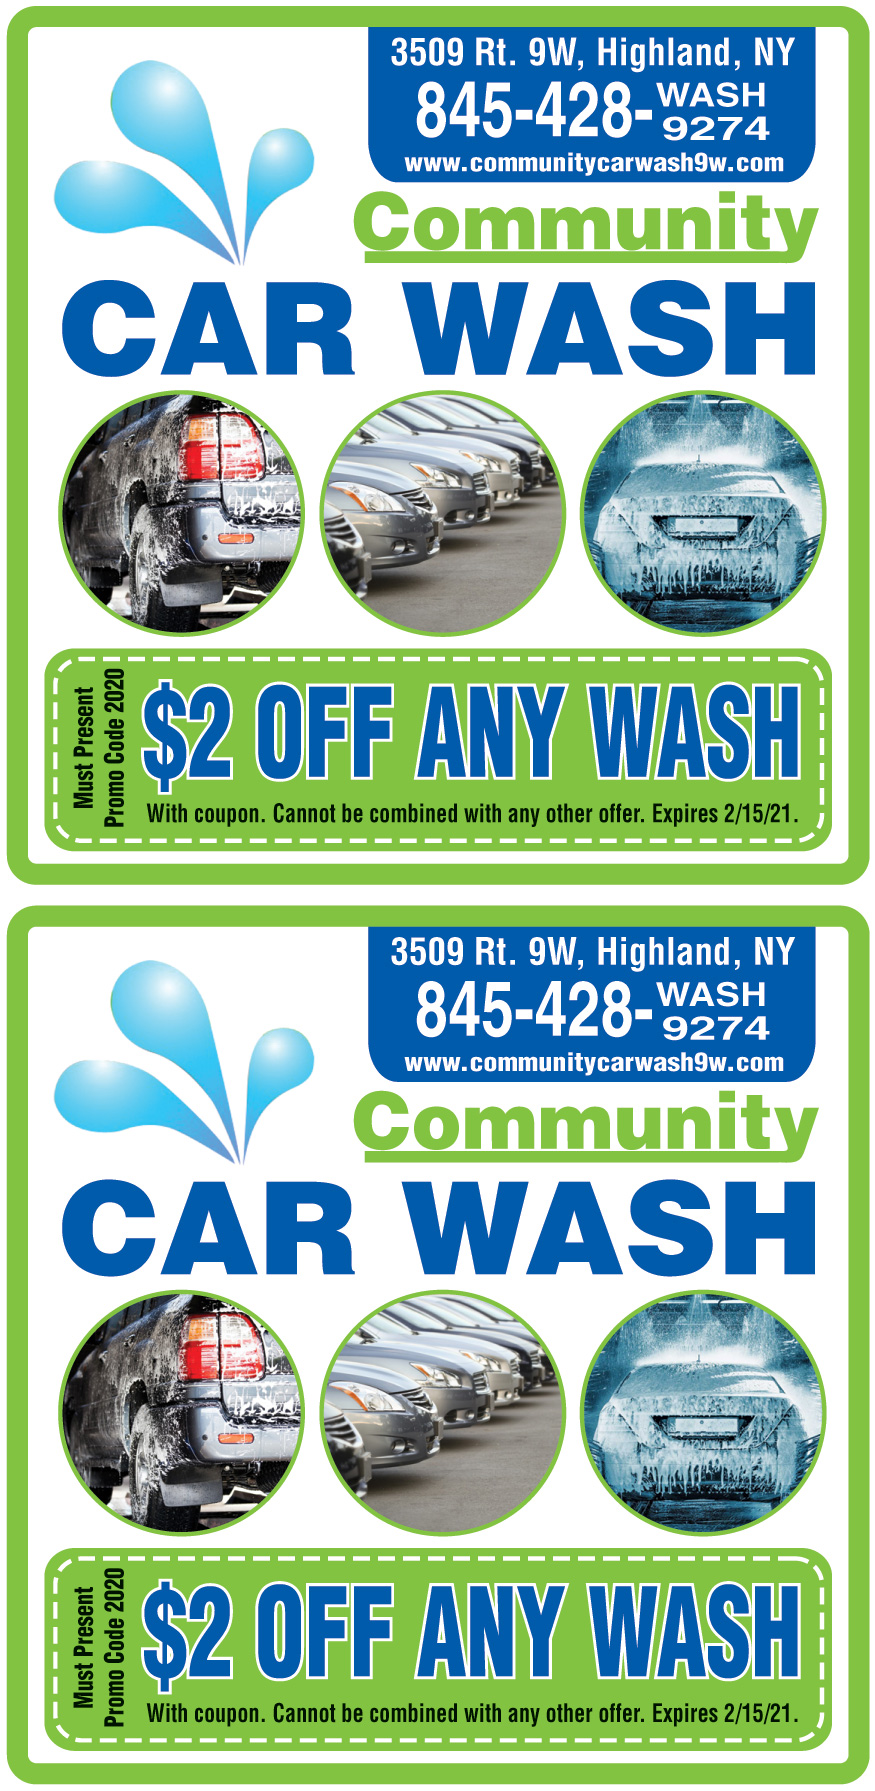 $2 OFF ON ANY WASH | Online Printable Coupons: USA Local ...